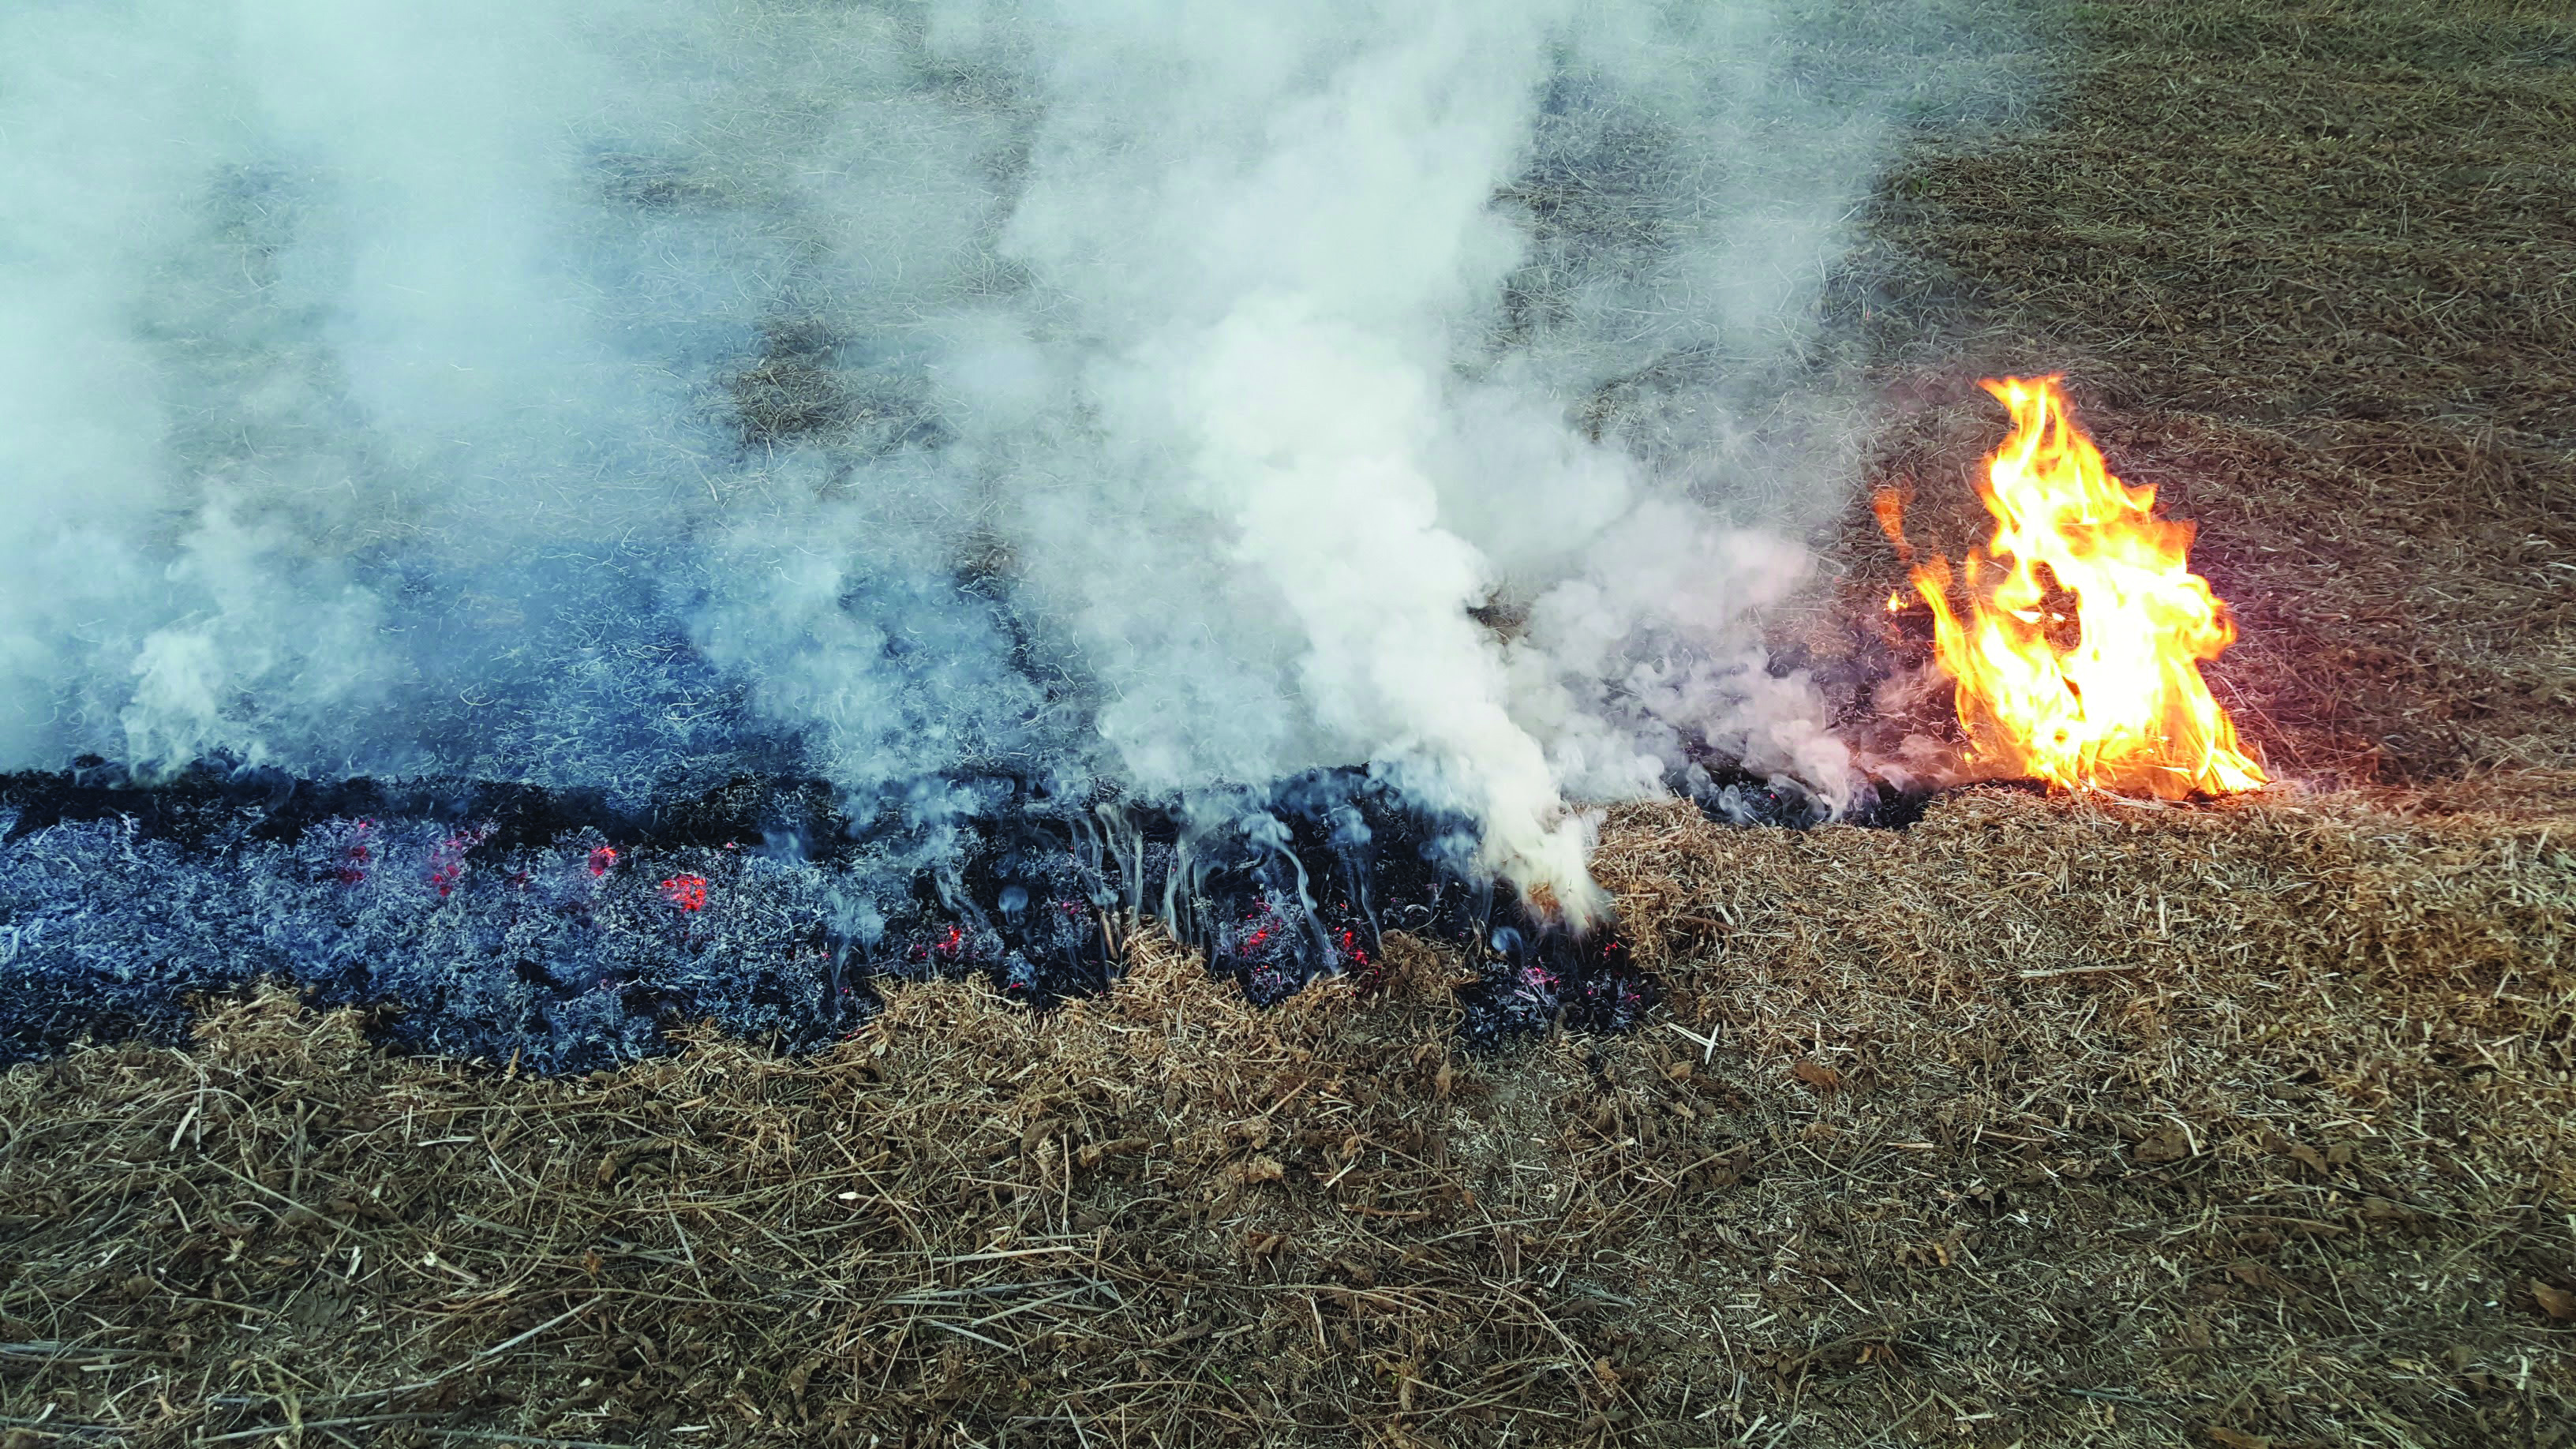 windrow burning.jpg thumbnail